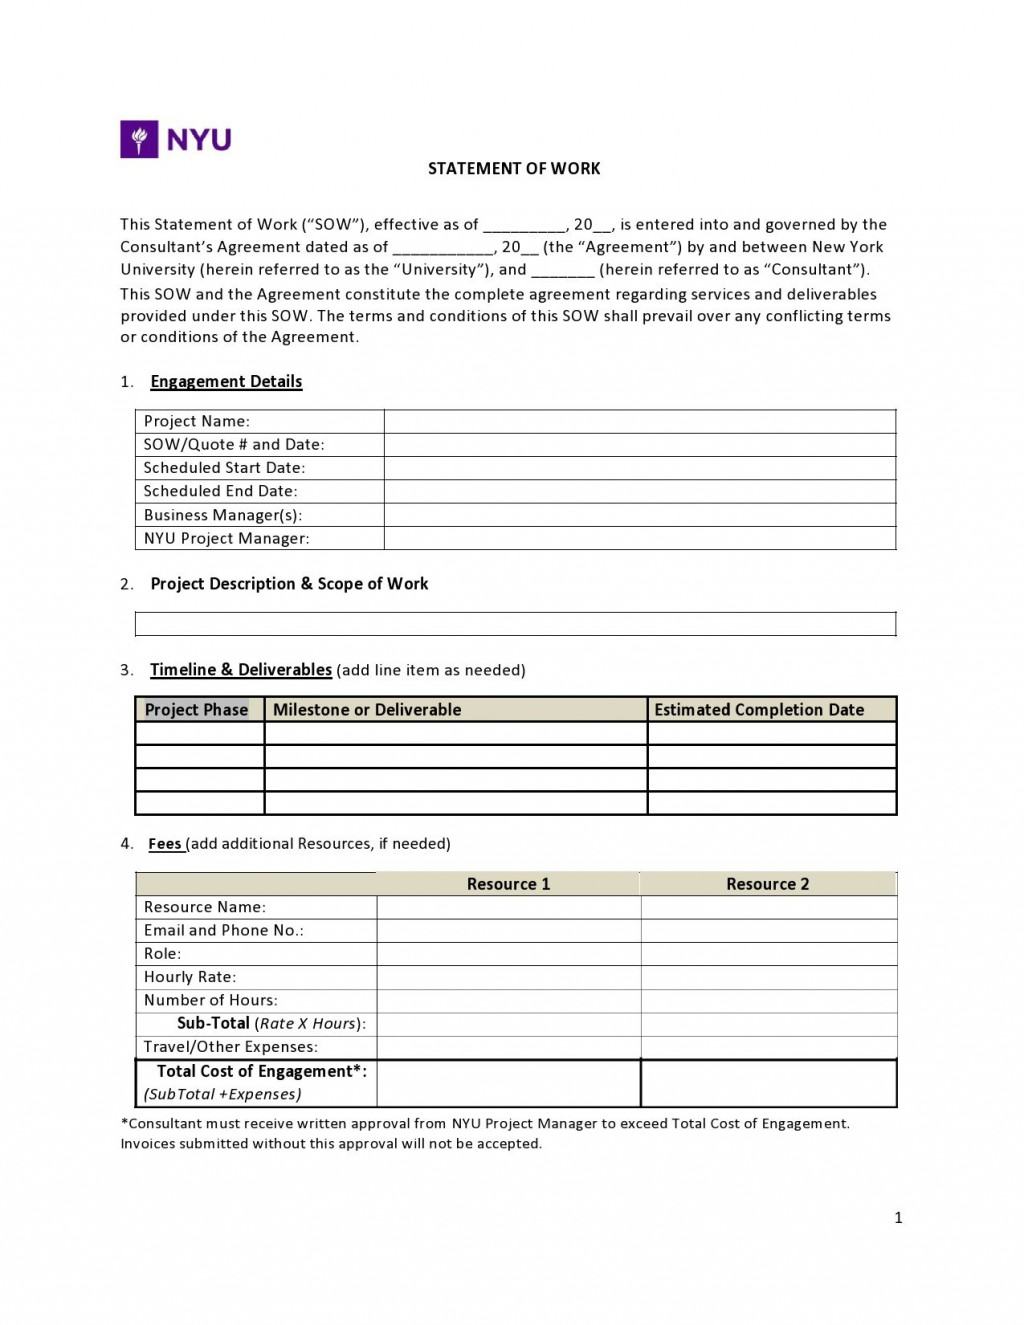 008 Breathtaking Sample Statement Of Work Consulting Service Inspiration Large